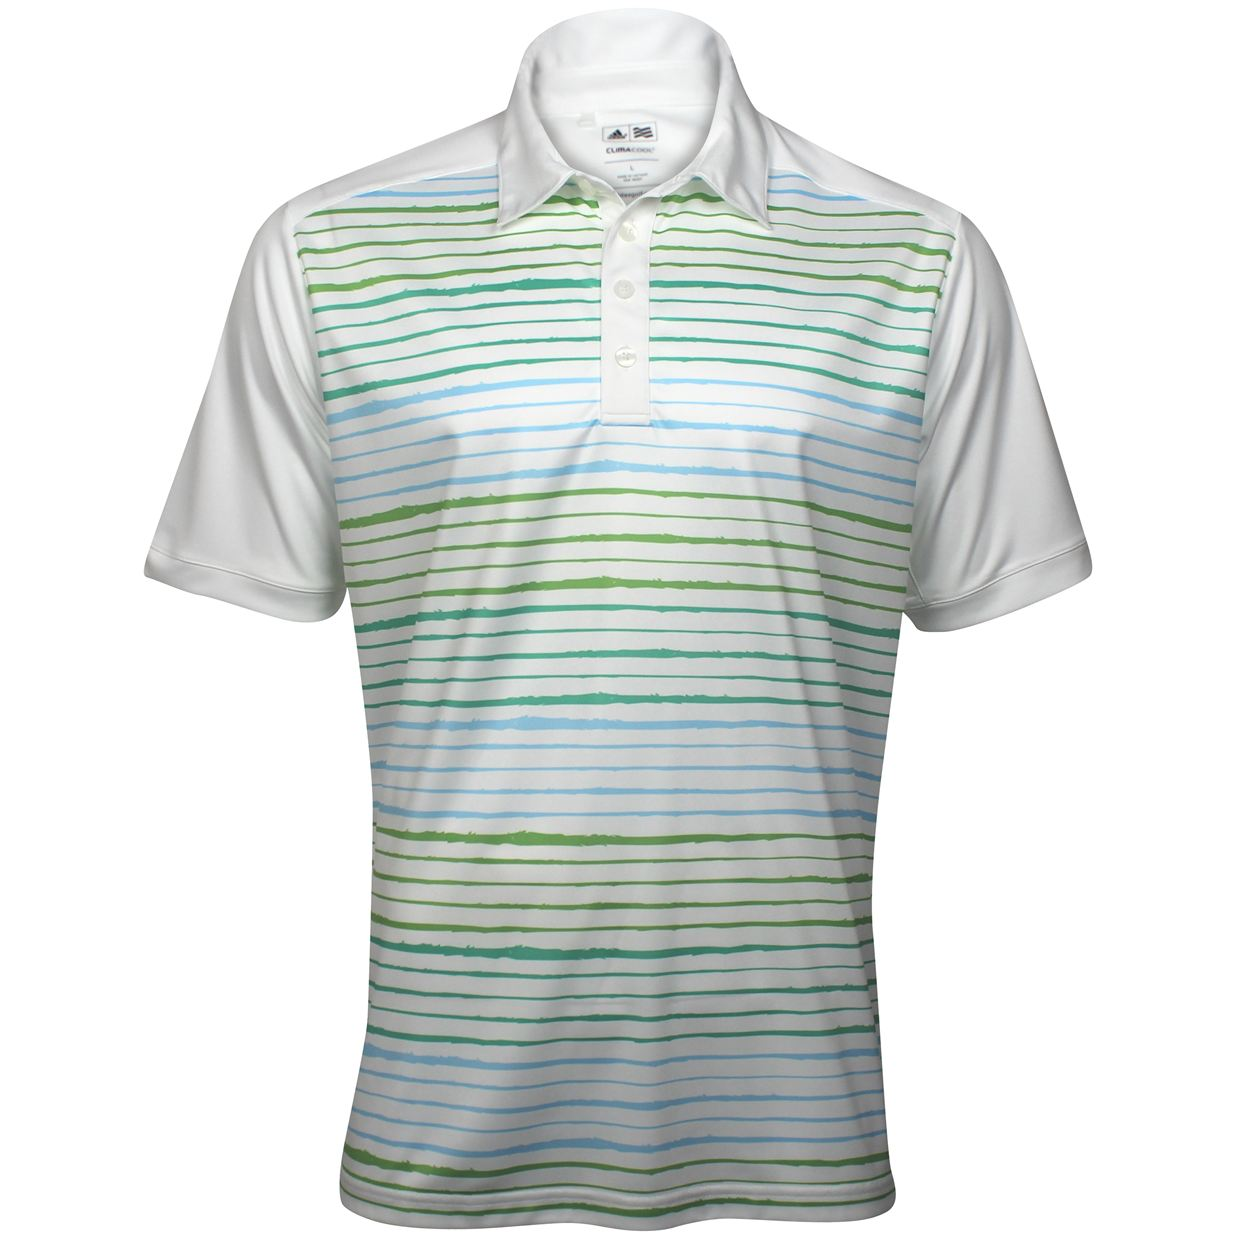 Nwt adidas climacool wood grain printed white island mint for Mint color polo shirt